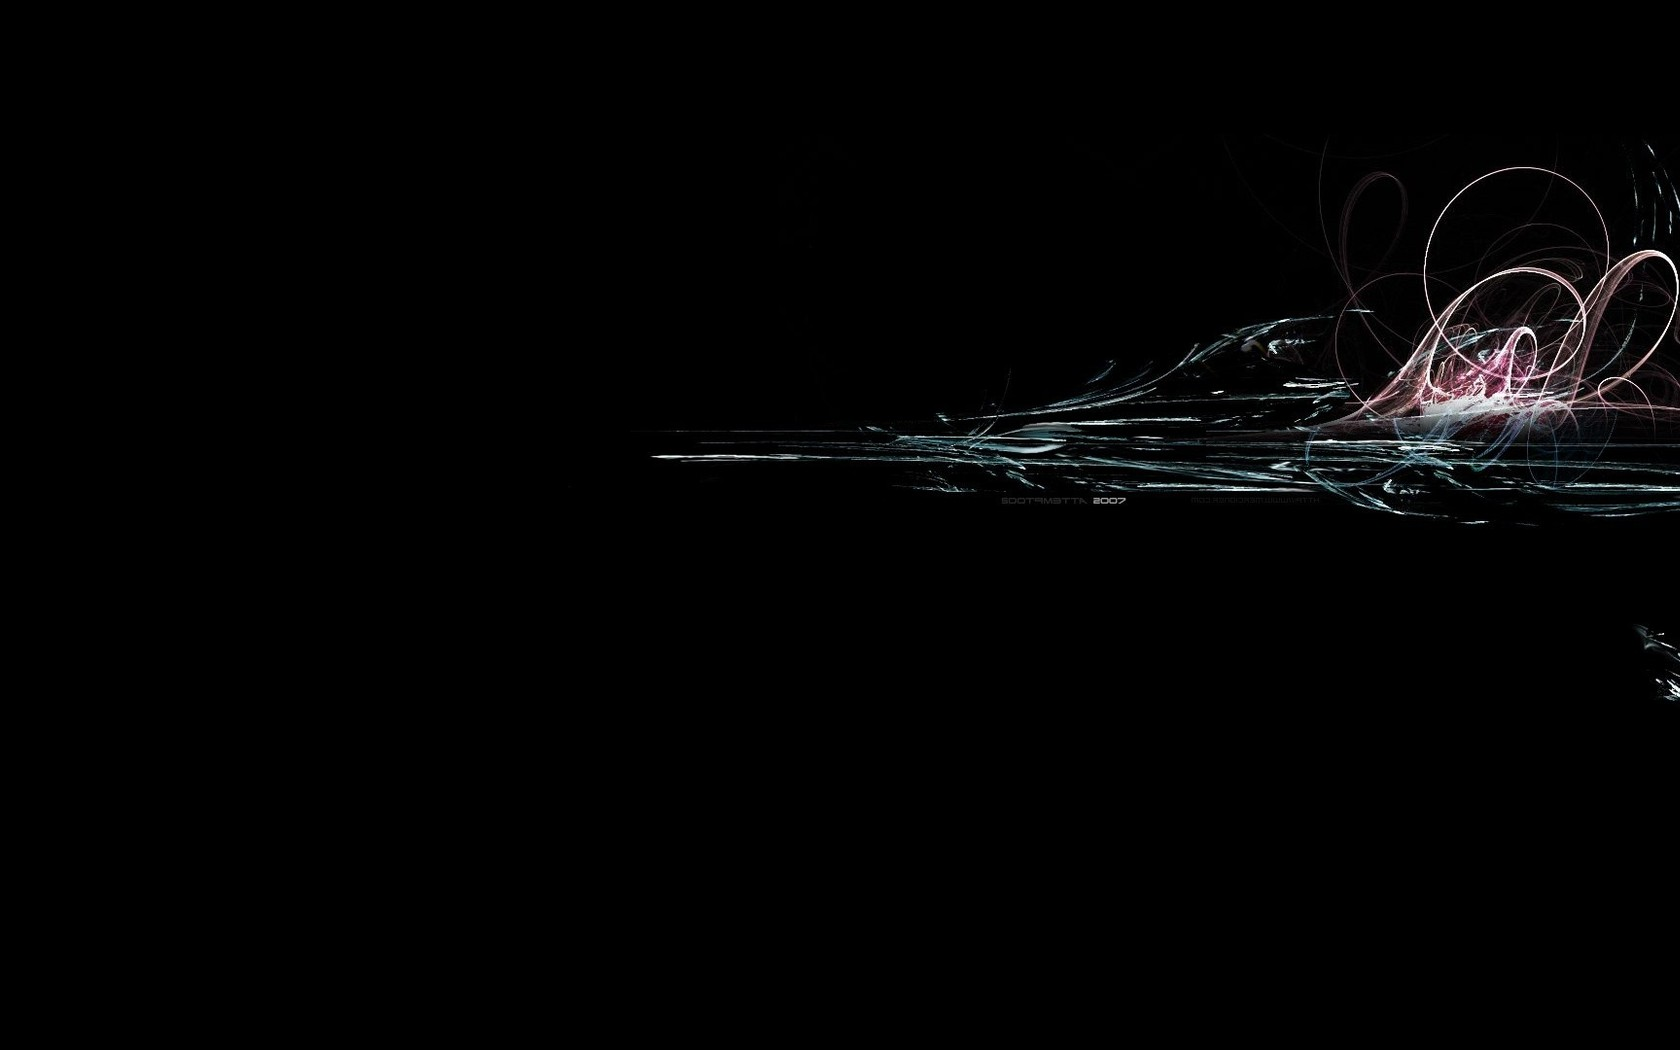 Black Abstract Wallpaper Hd Awesome black themed abstract 1680x1050